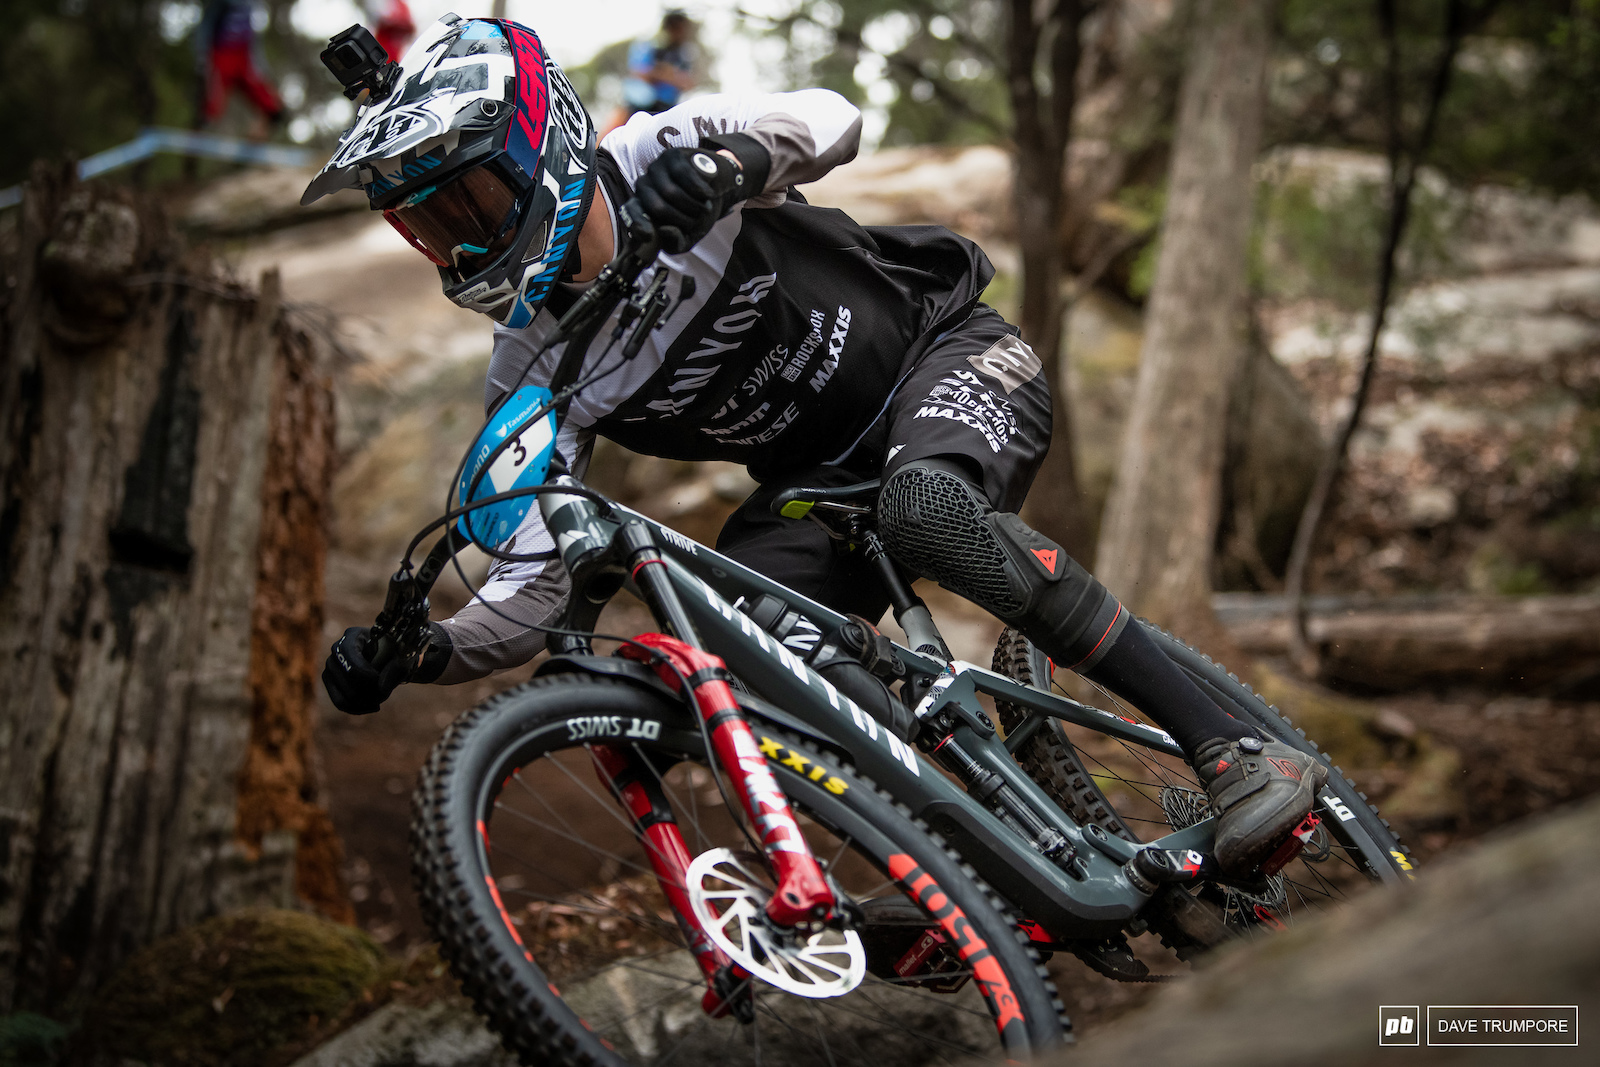 Florian Nicolai looking to back up his podium appearance from a week ago in New Zealand.